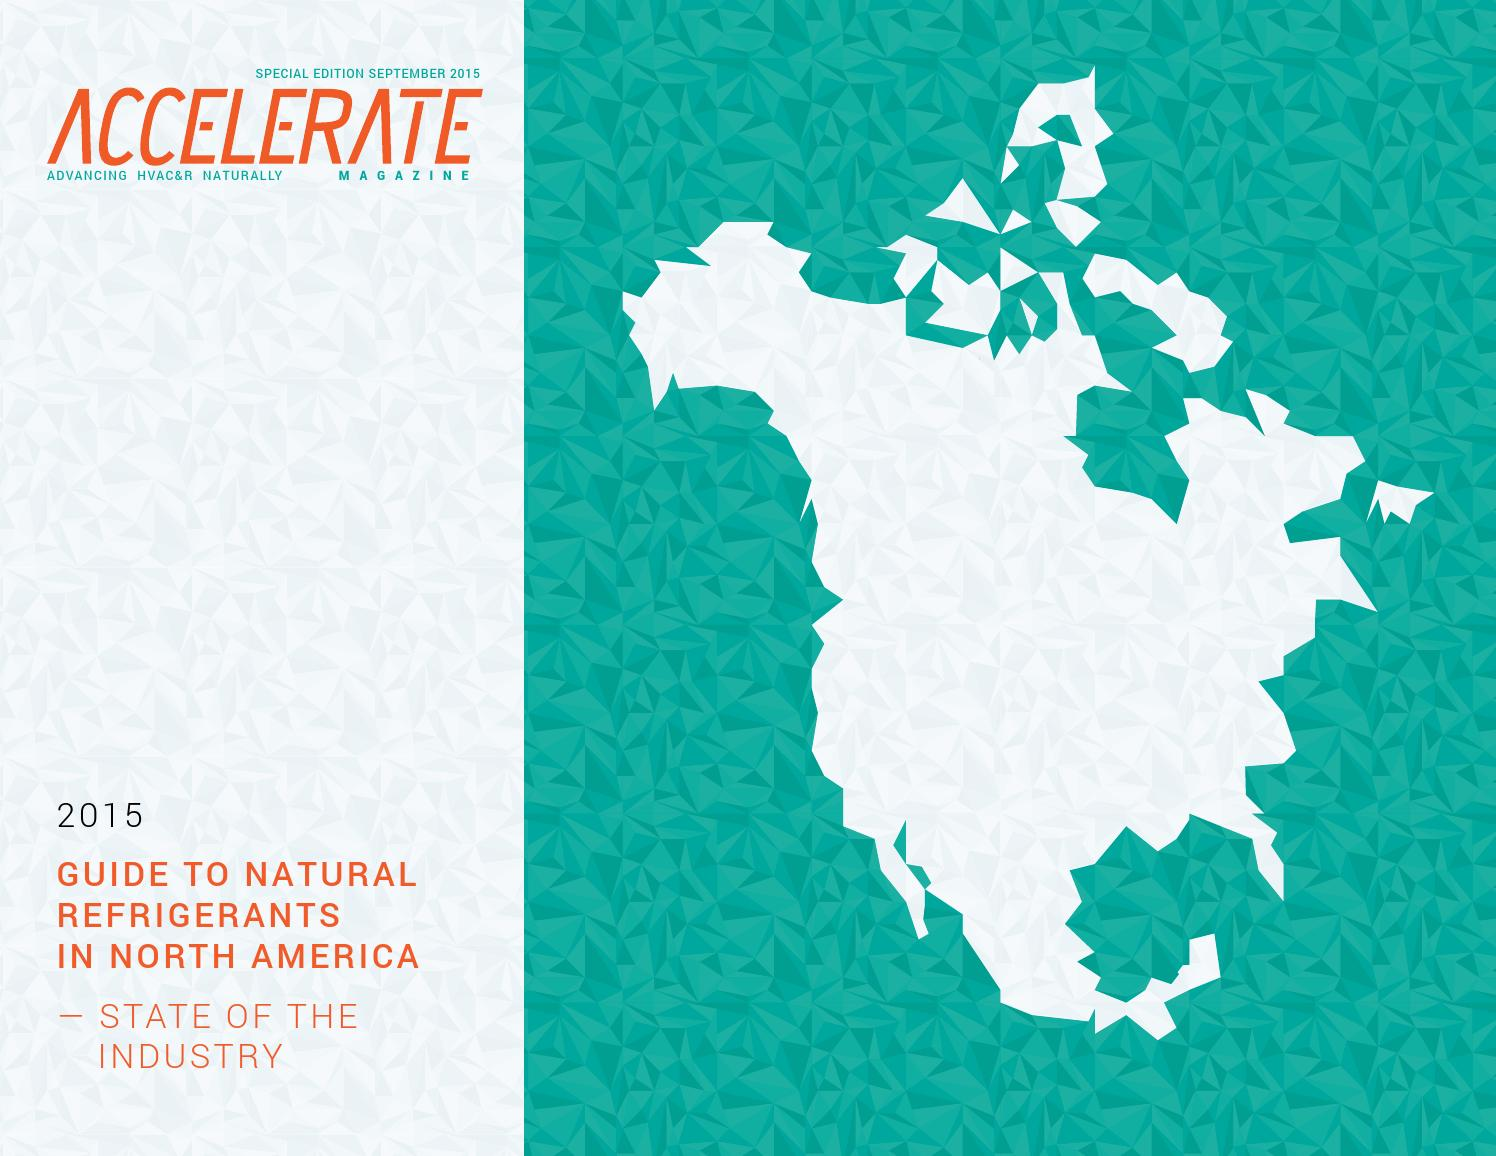 GUIDE to Natural Refrigerants in North America - State of